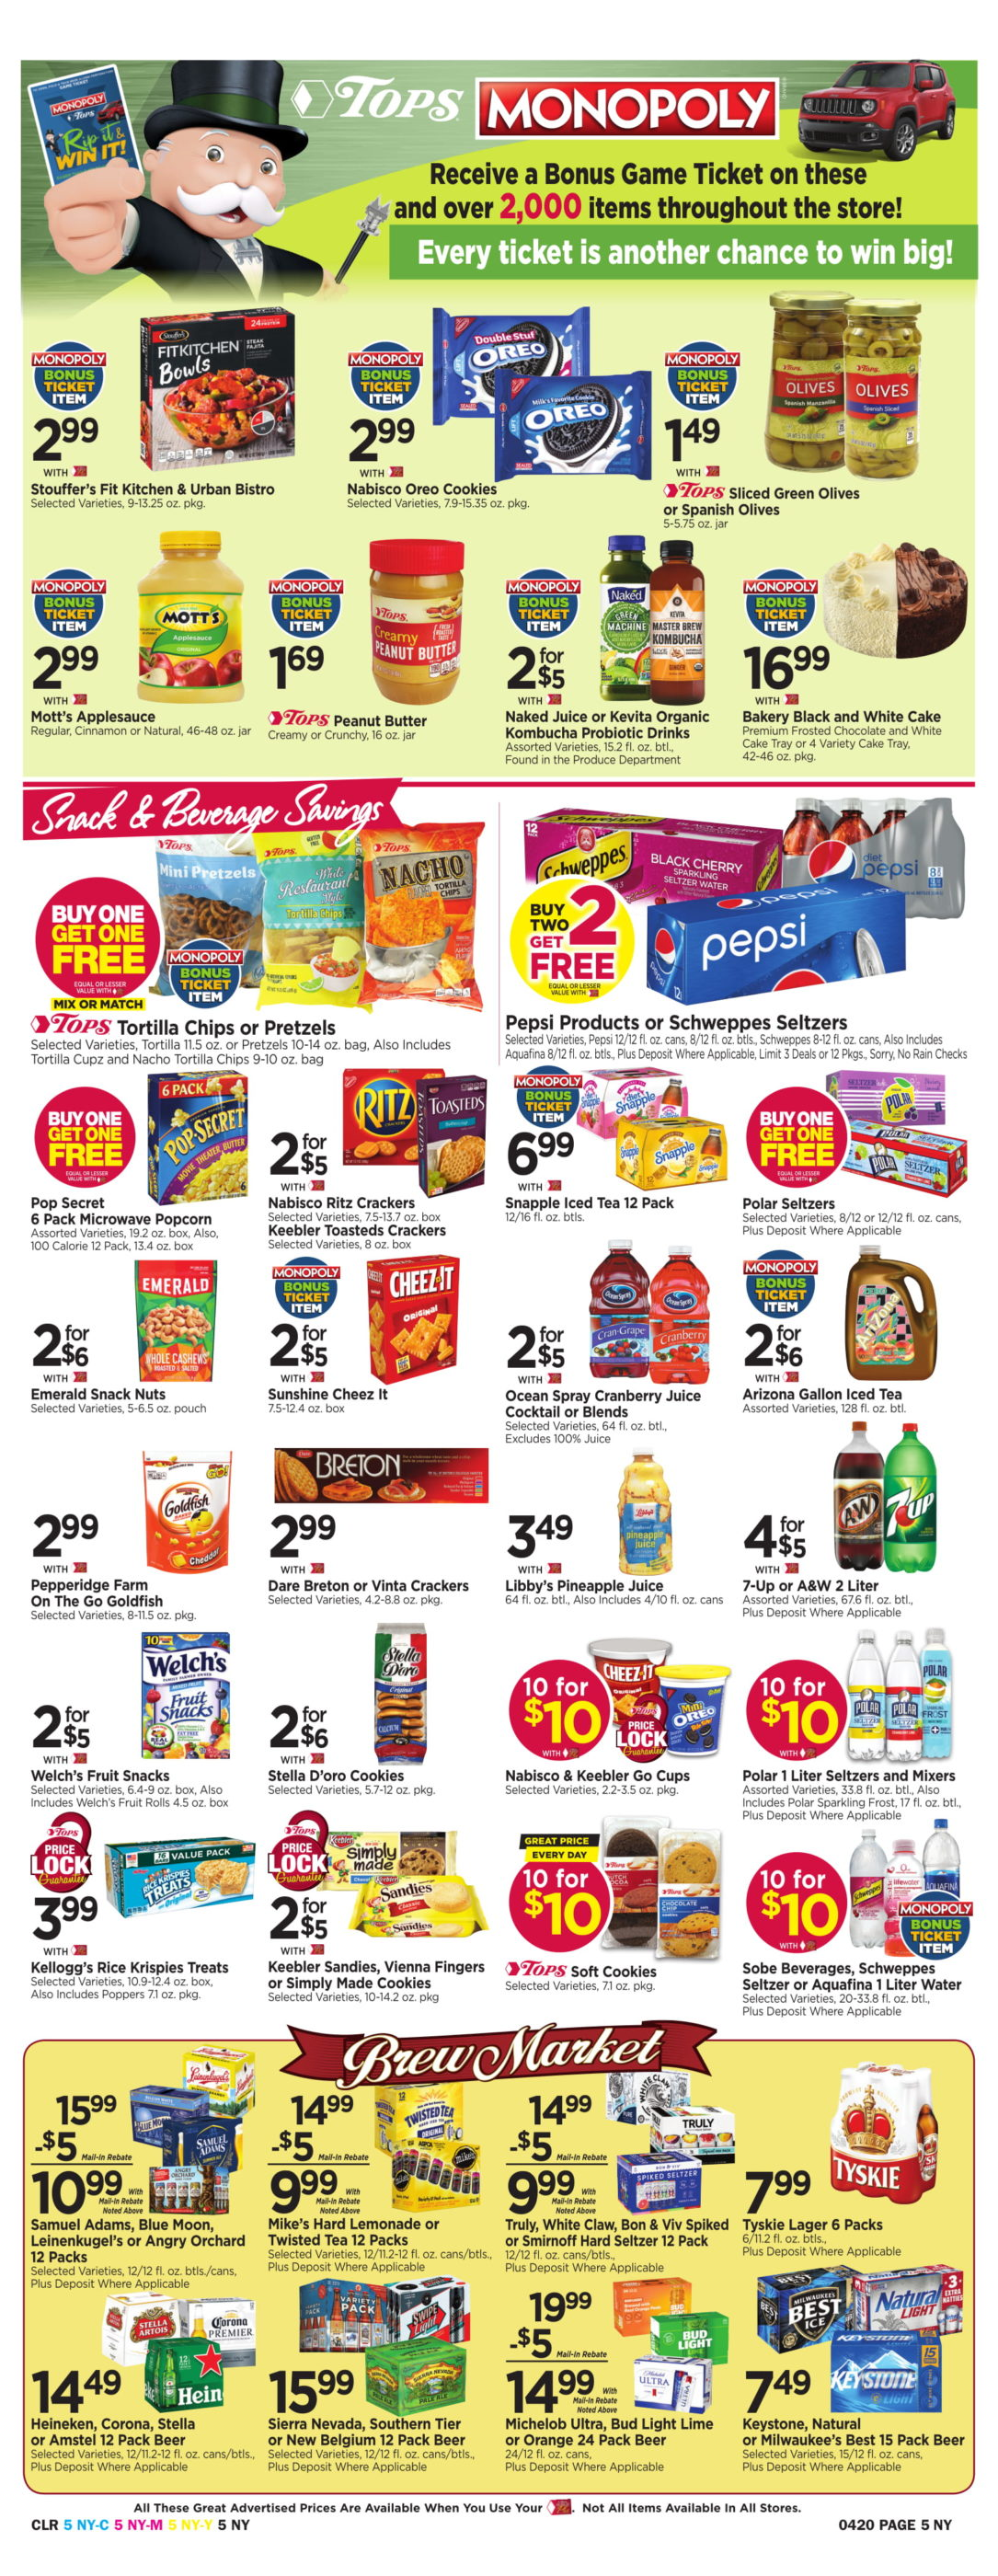 photograph about Cheez It Coupon Printable known as Tops Marketplaces Bargains: April 14 - 20, 2019 -